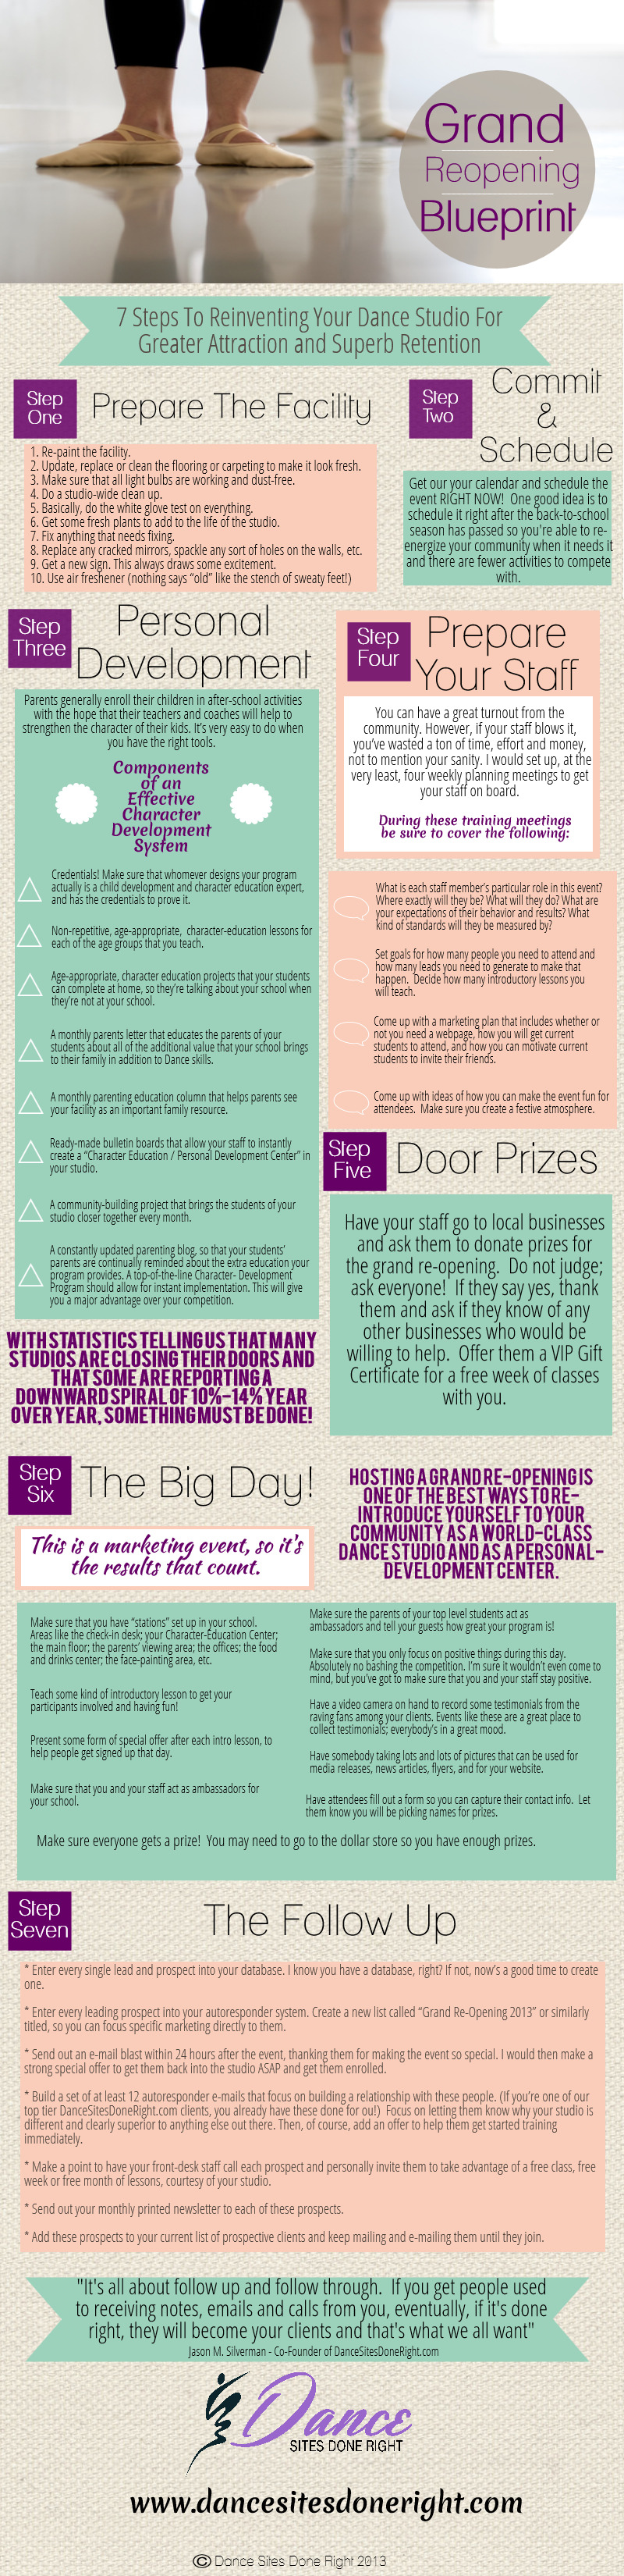 How to boost business at your dance studio with a grand reopening how to boost business at your dance studio with a grand reopening biztip studio malvernweather Choice Image